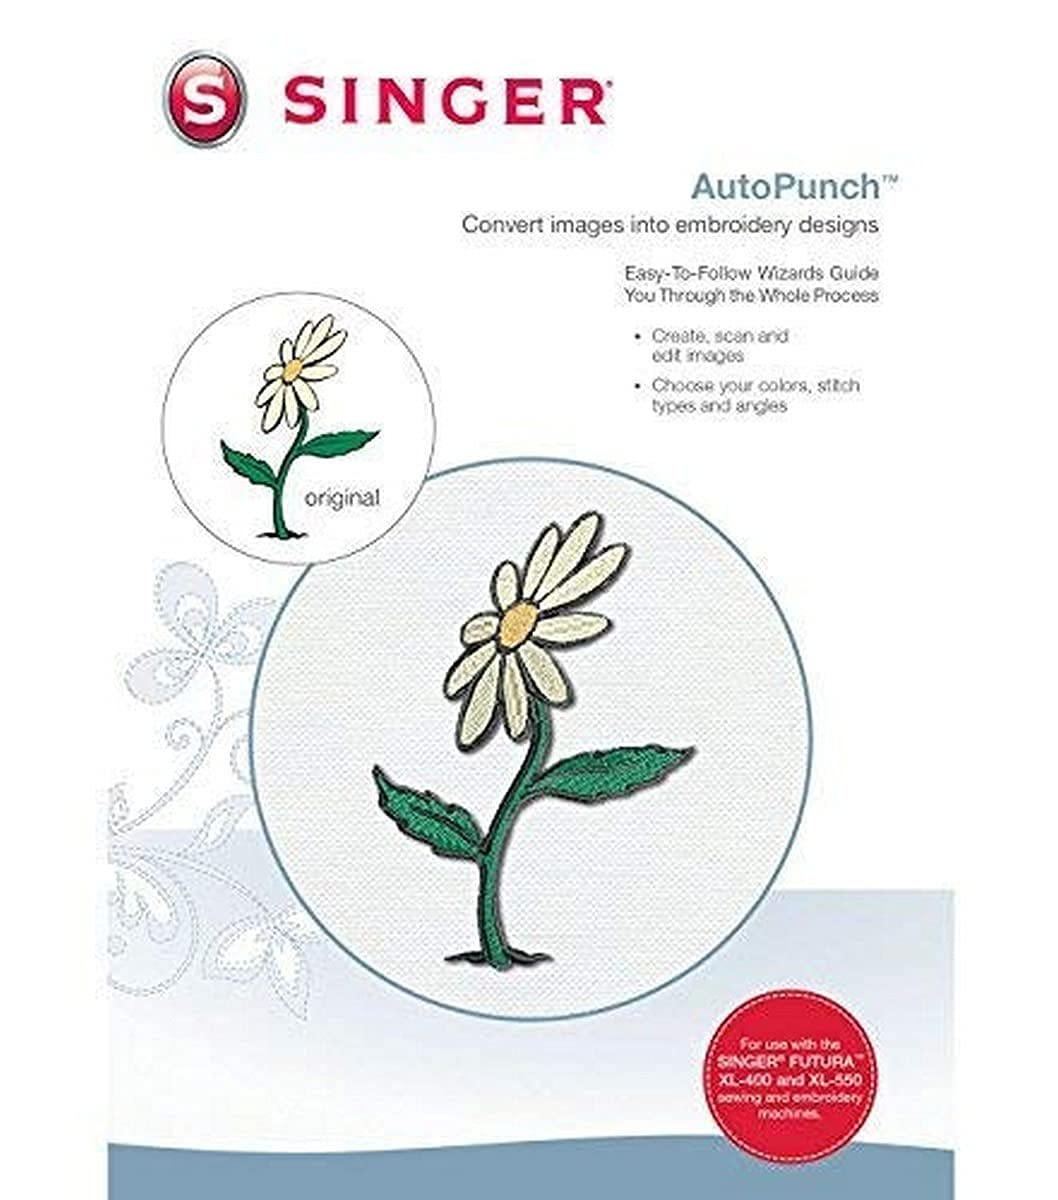 SINGER | Futura Auto Punch Software for XL-400 Sewing and Embroidery Machine